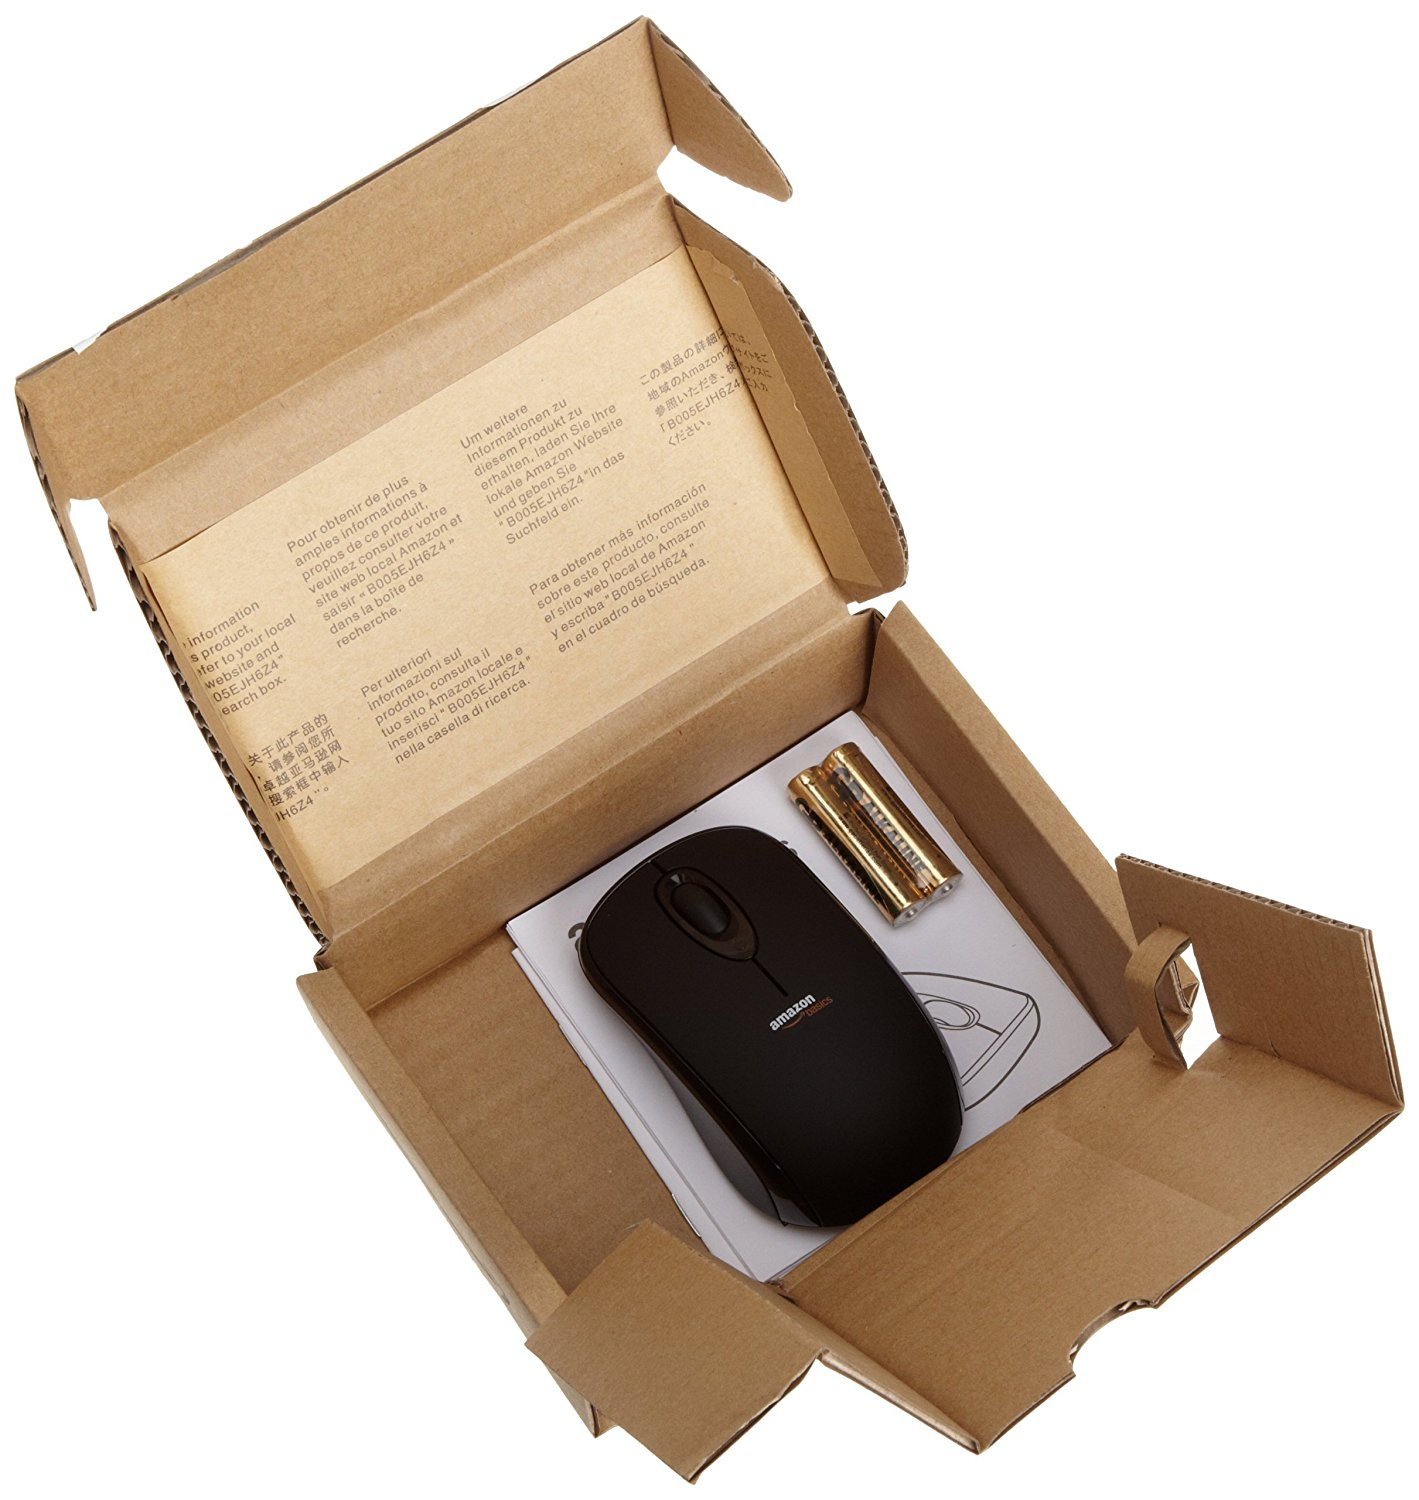 amazonbasics wireless mouse with nano receiver tropical computers ltd. Black Bedroom Furniture Sets. Home Design Ideas